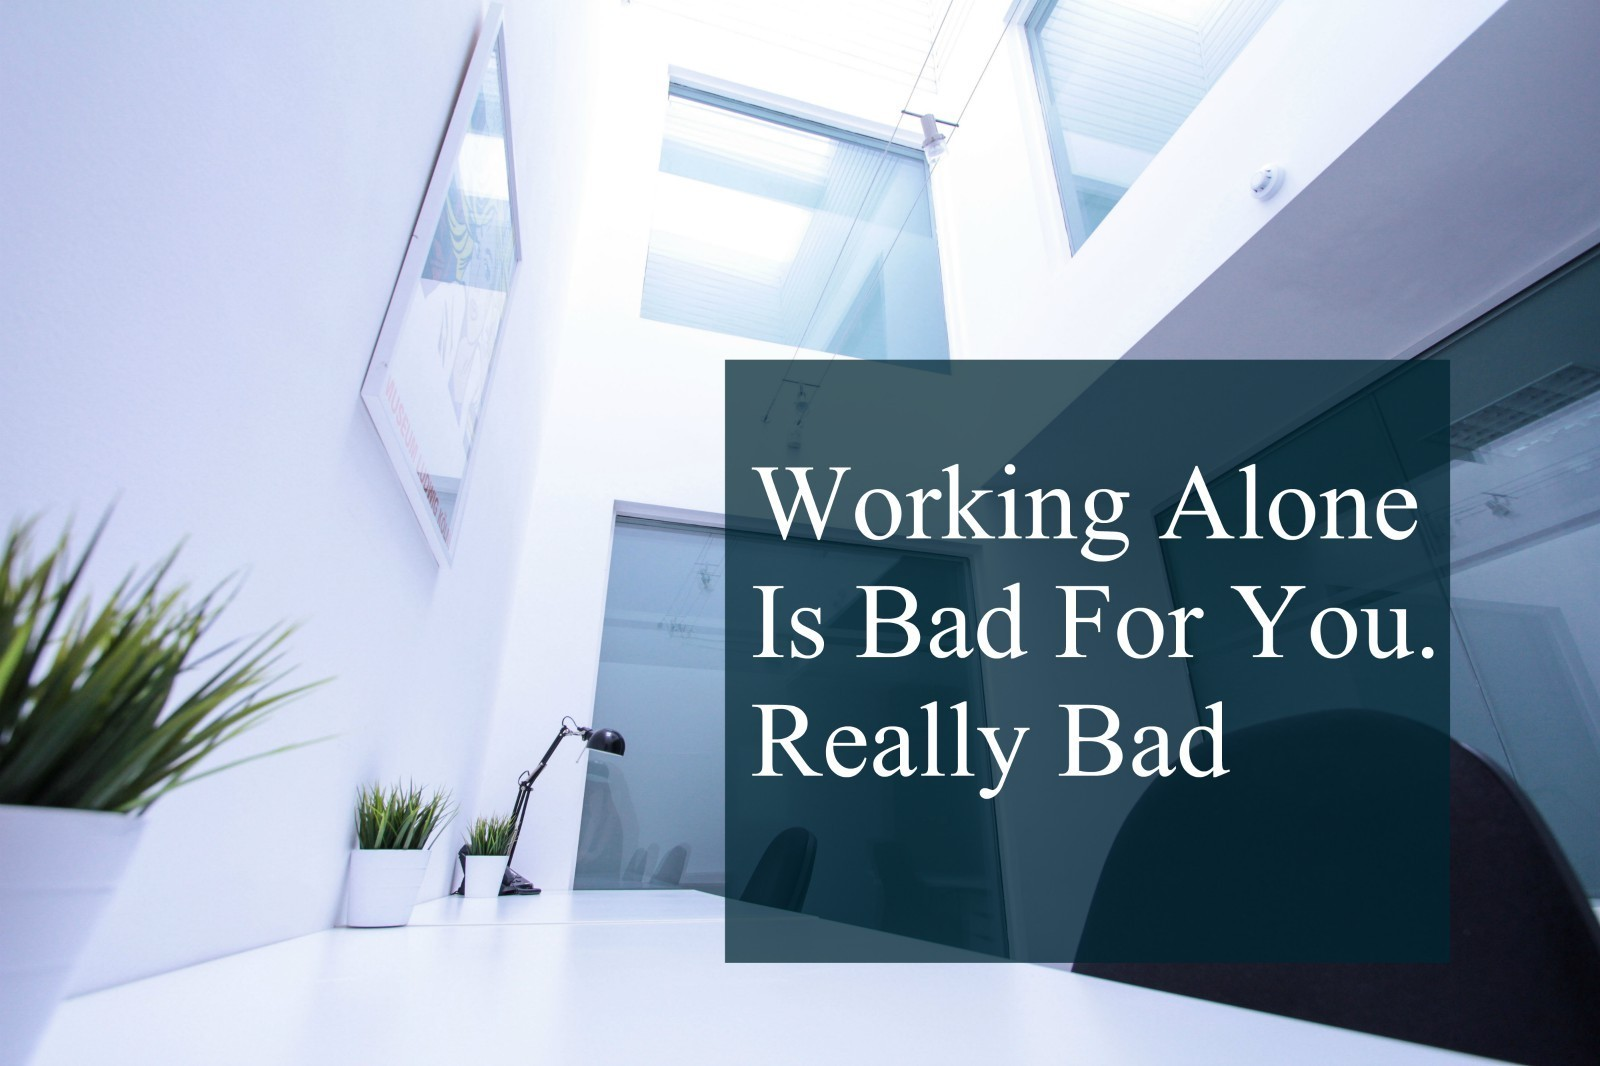 Working Alone Is Bad For You. Really Bad.